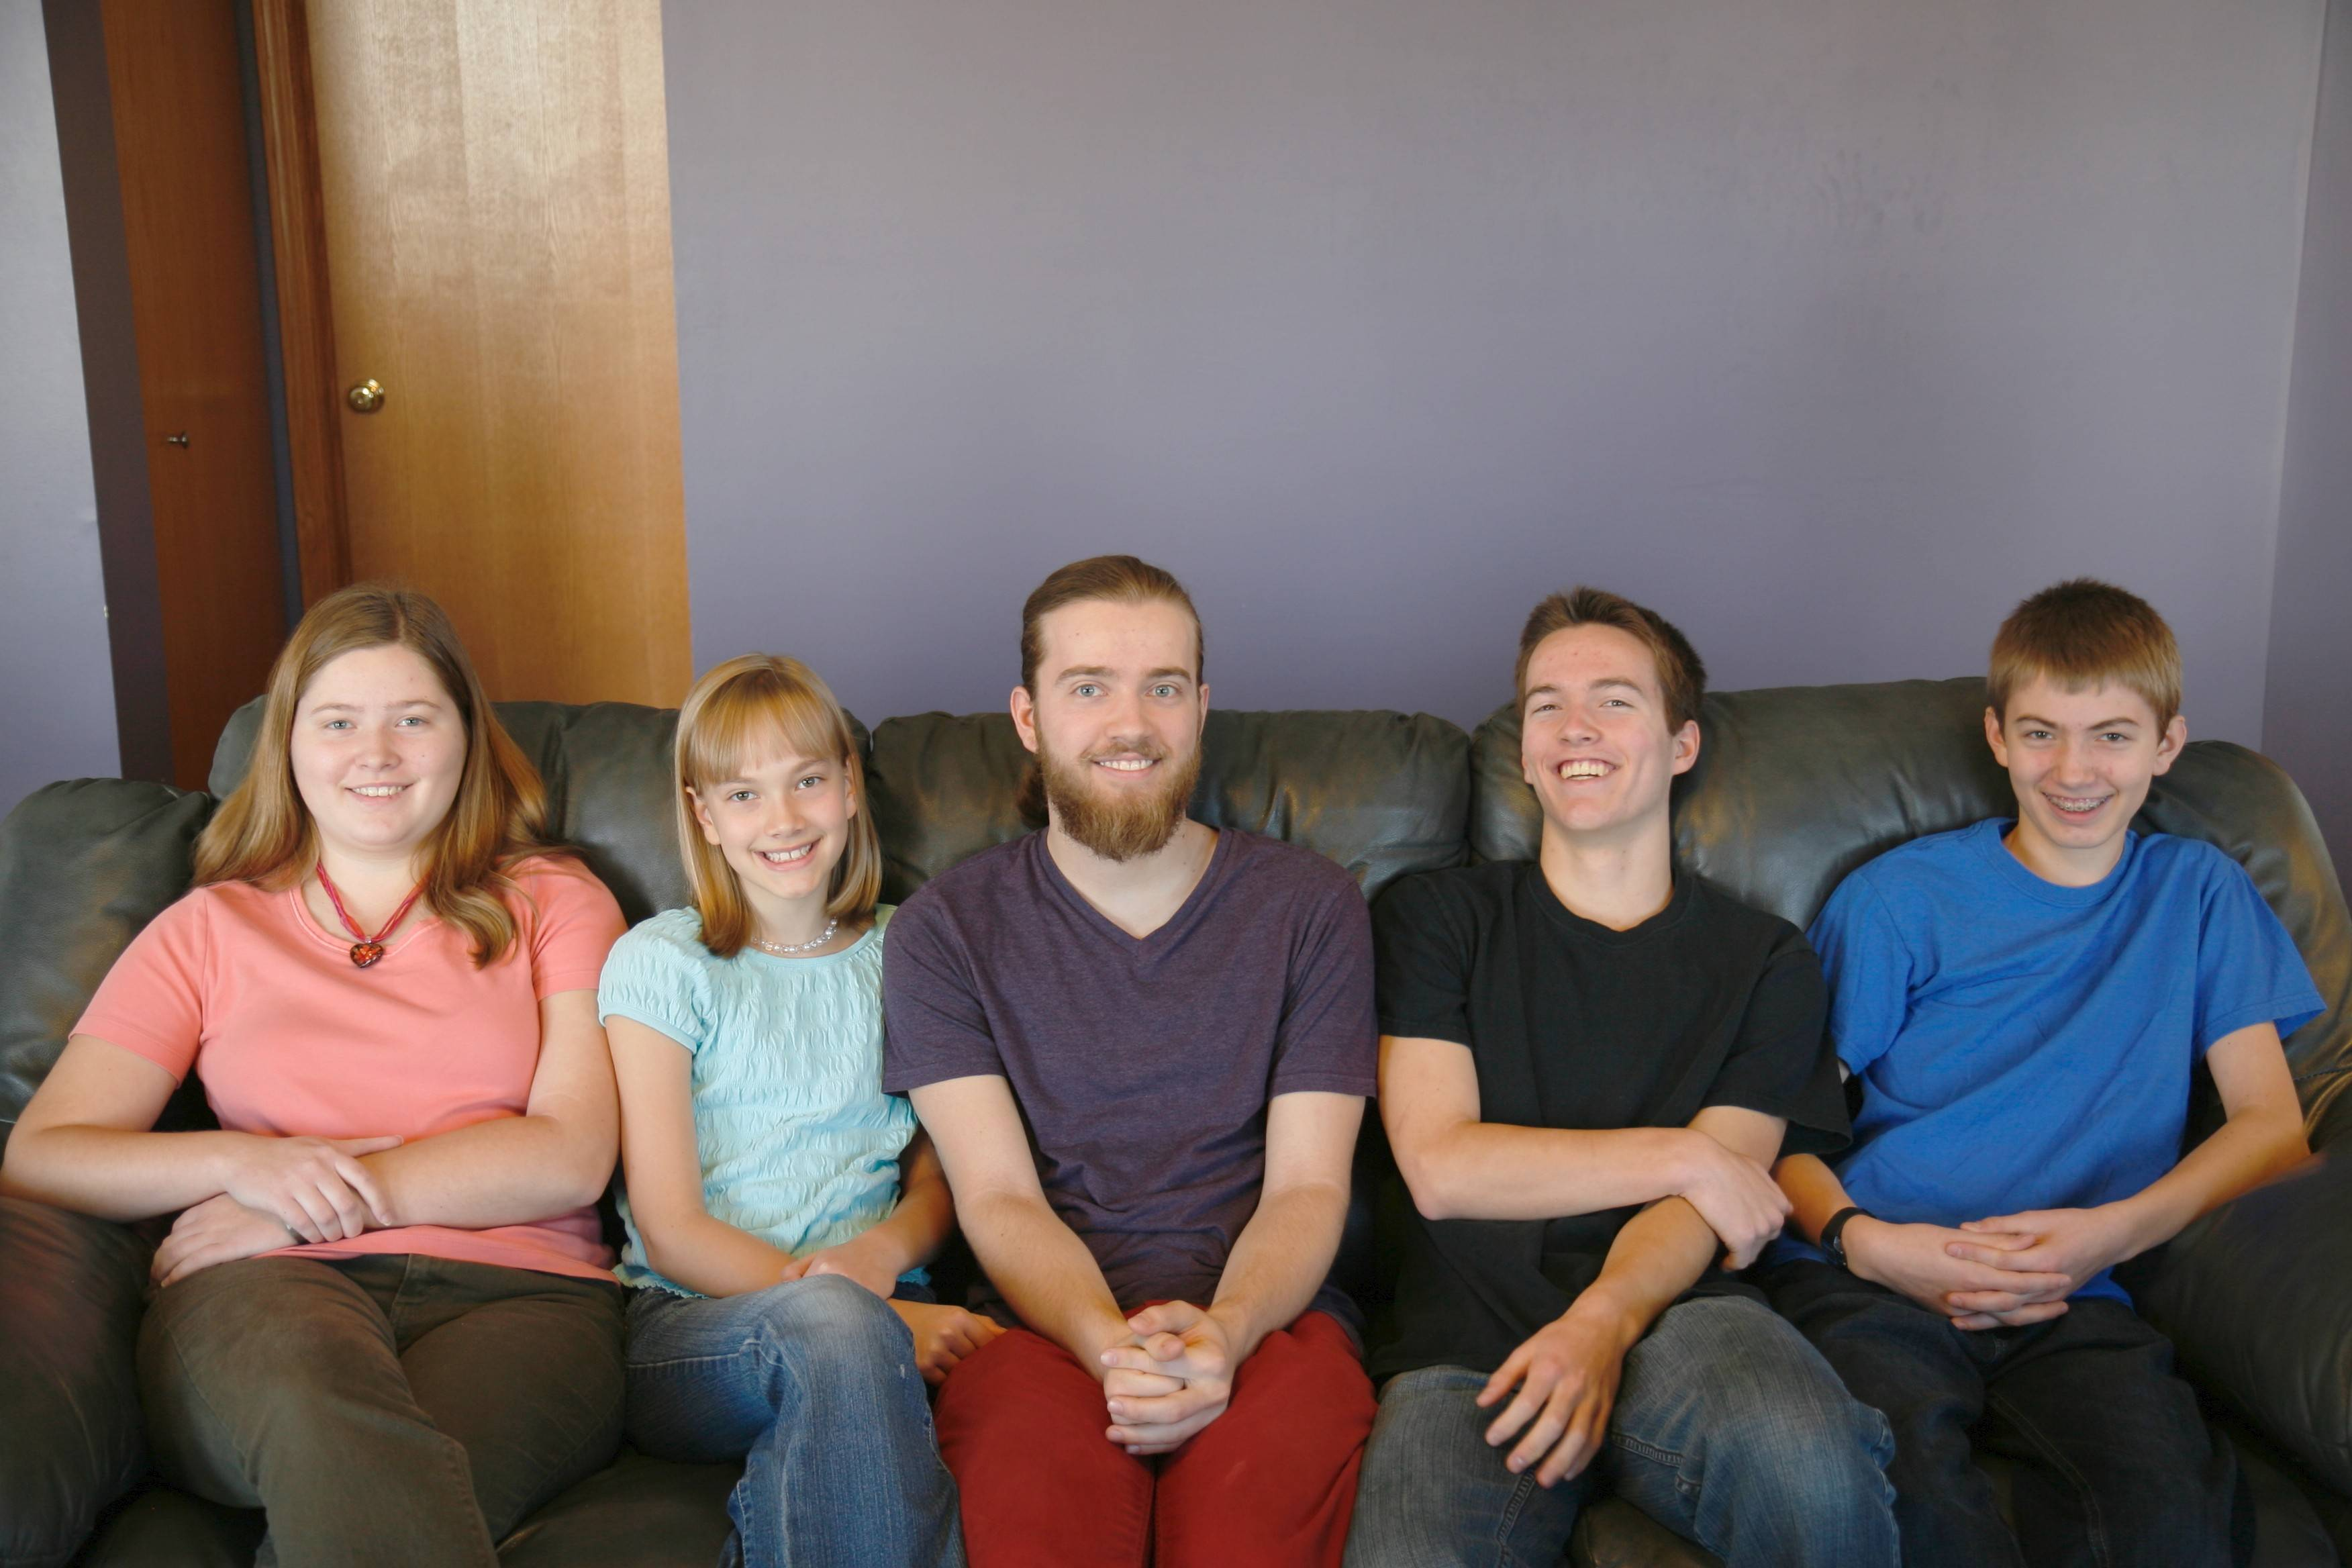 Allison Spahr, 10, second from the left, with her siblings Lauren, 18, Bryan, 21, Eric, 16, and Kyle, 13. Allison was killed Sunday morning during a family camping trip in Wisconsin. The Spahrs live in Cary.